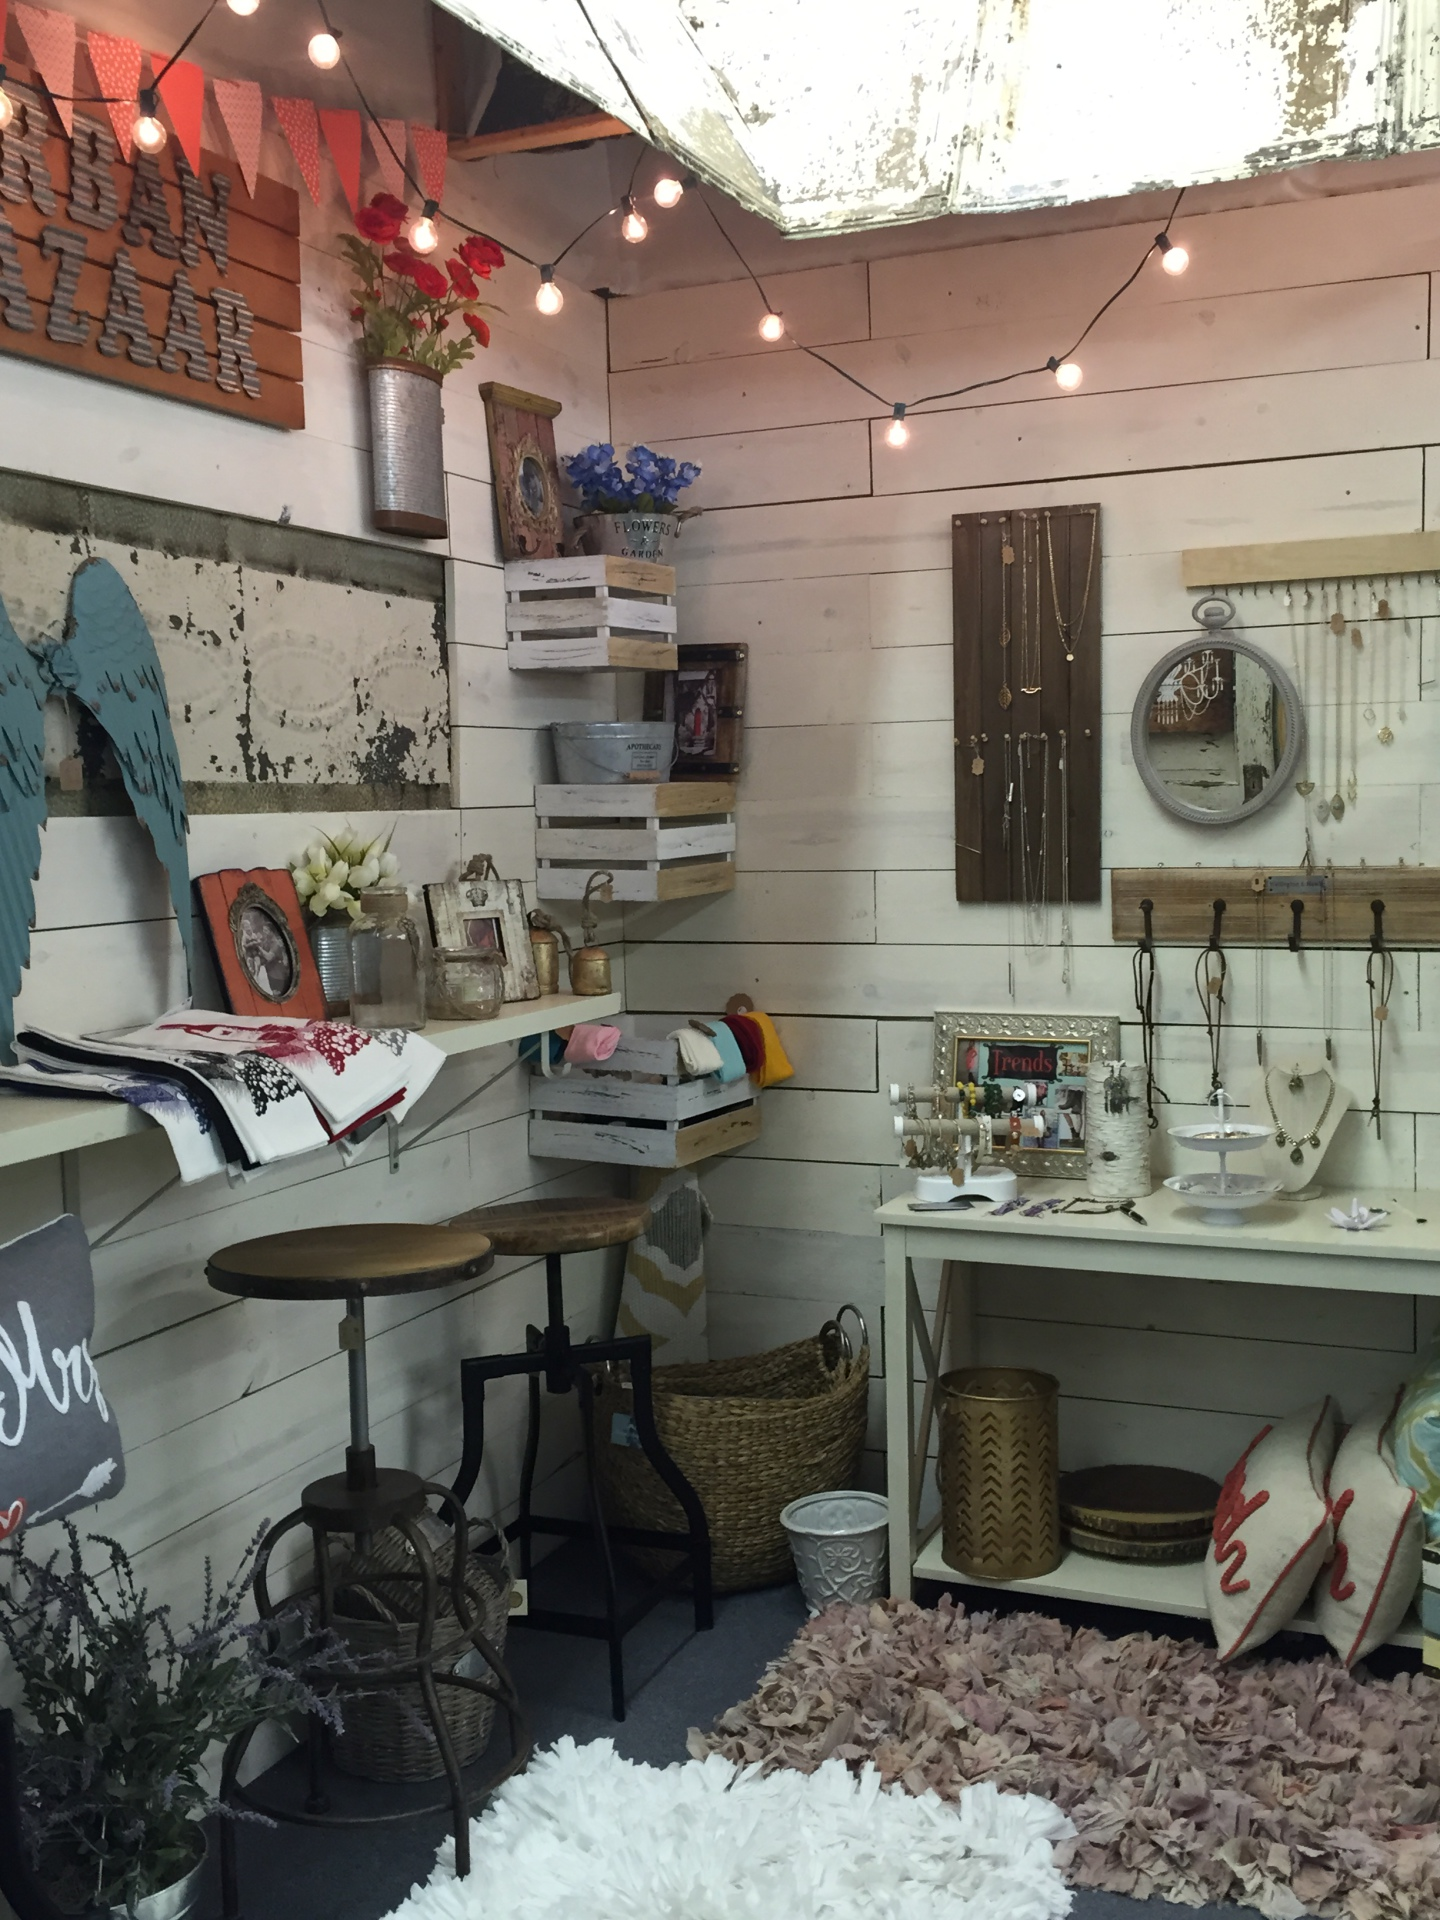 Waco's Largest Gift Store. Angel wings, handmade jewelry, decorative pillows, antiques, are great finds when doing your Waco shopping.